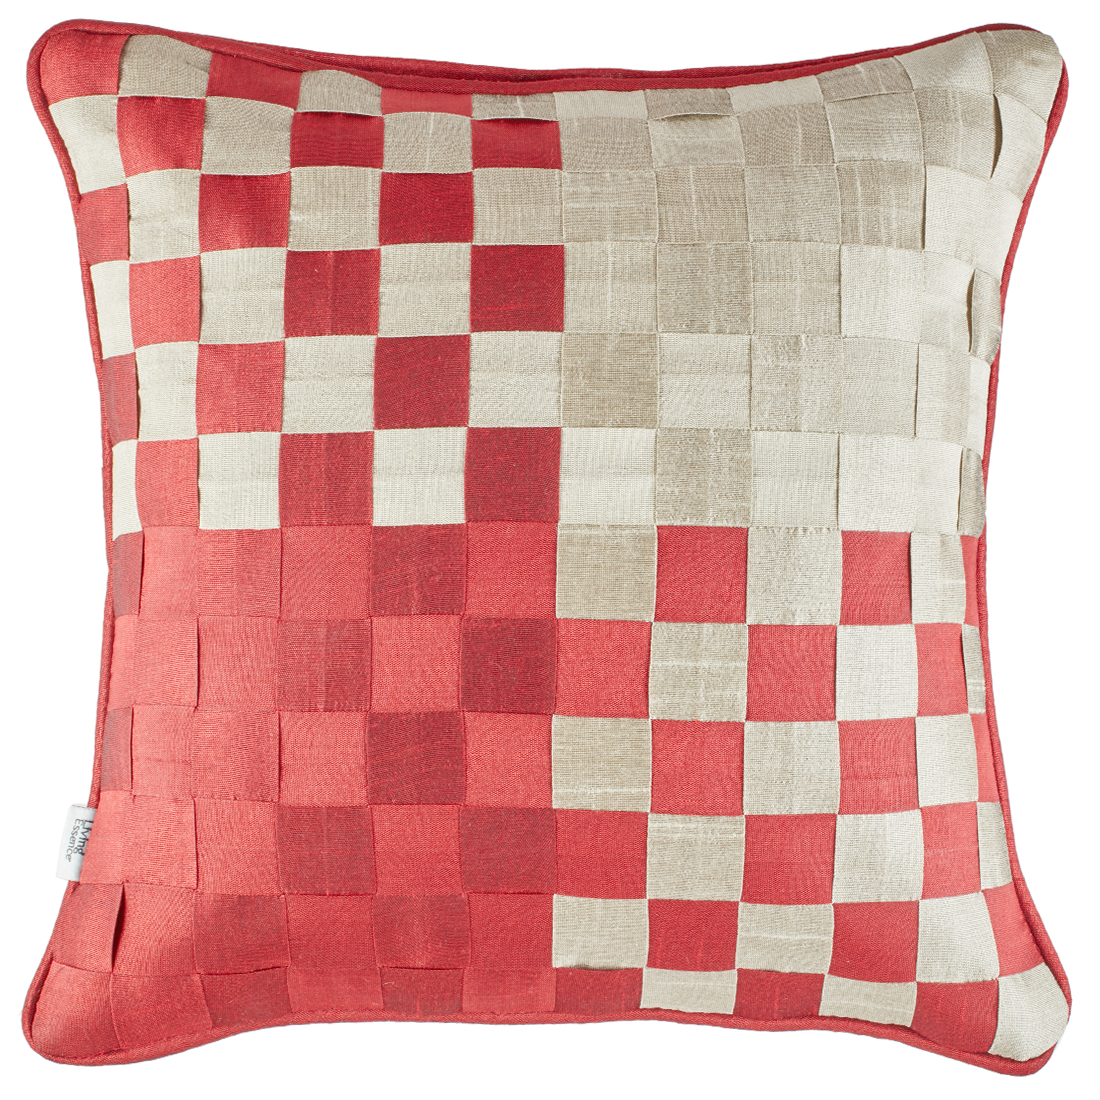 Basket Polyester Cushion Covers in Maroon Colour by Living Essence